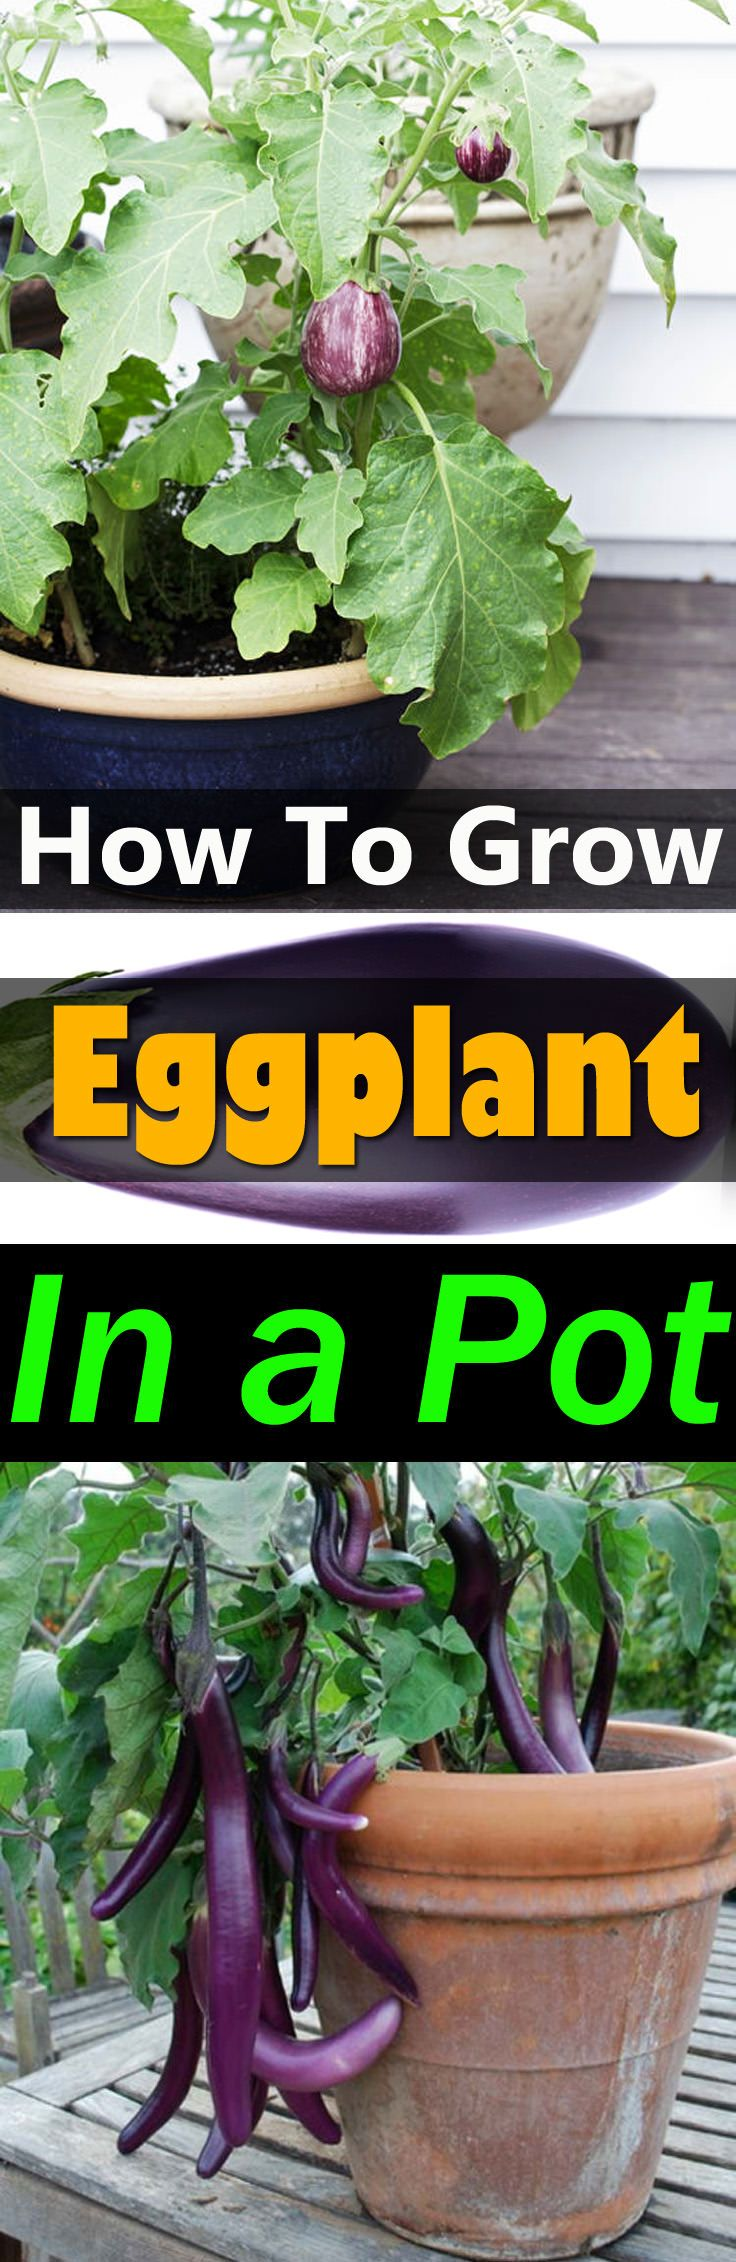 Growing eggplants in containers is not complicated and if you're a fan of grilling and oven broiling, you should grow this delicious and PRODUCTIVE vegetable.